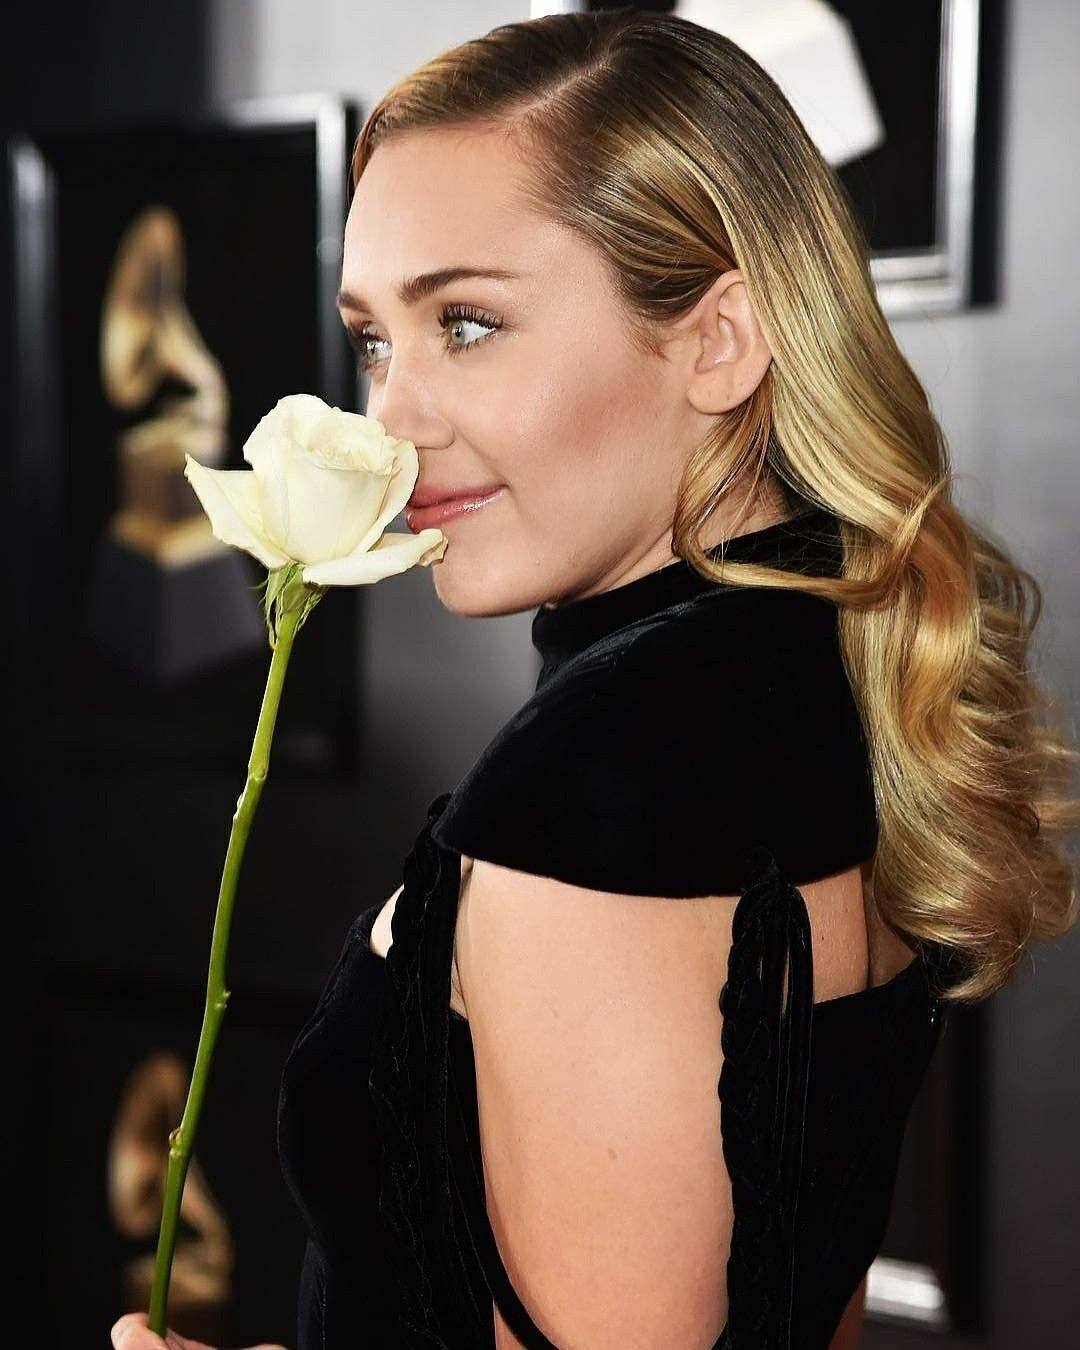 Miley Cyrus The 2018 Grammys Miley Cyrus Hair Miley Cyrus Grammys Miley Cyrus